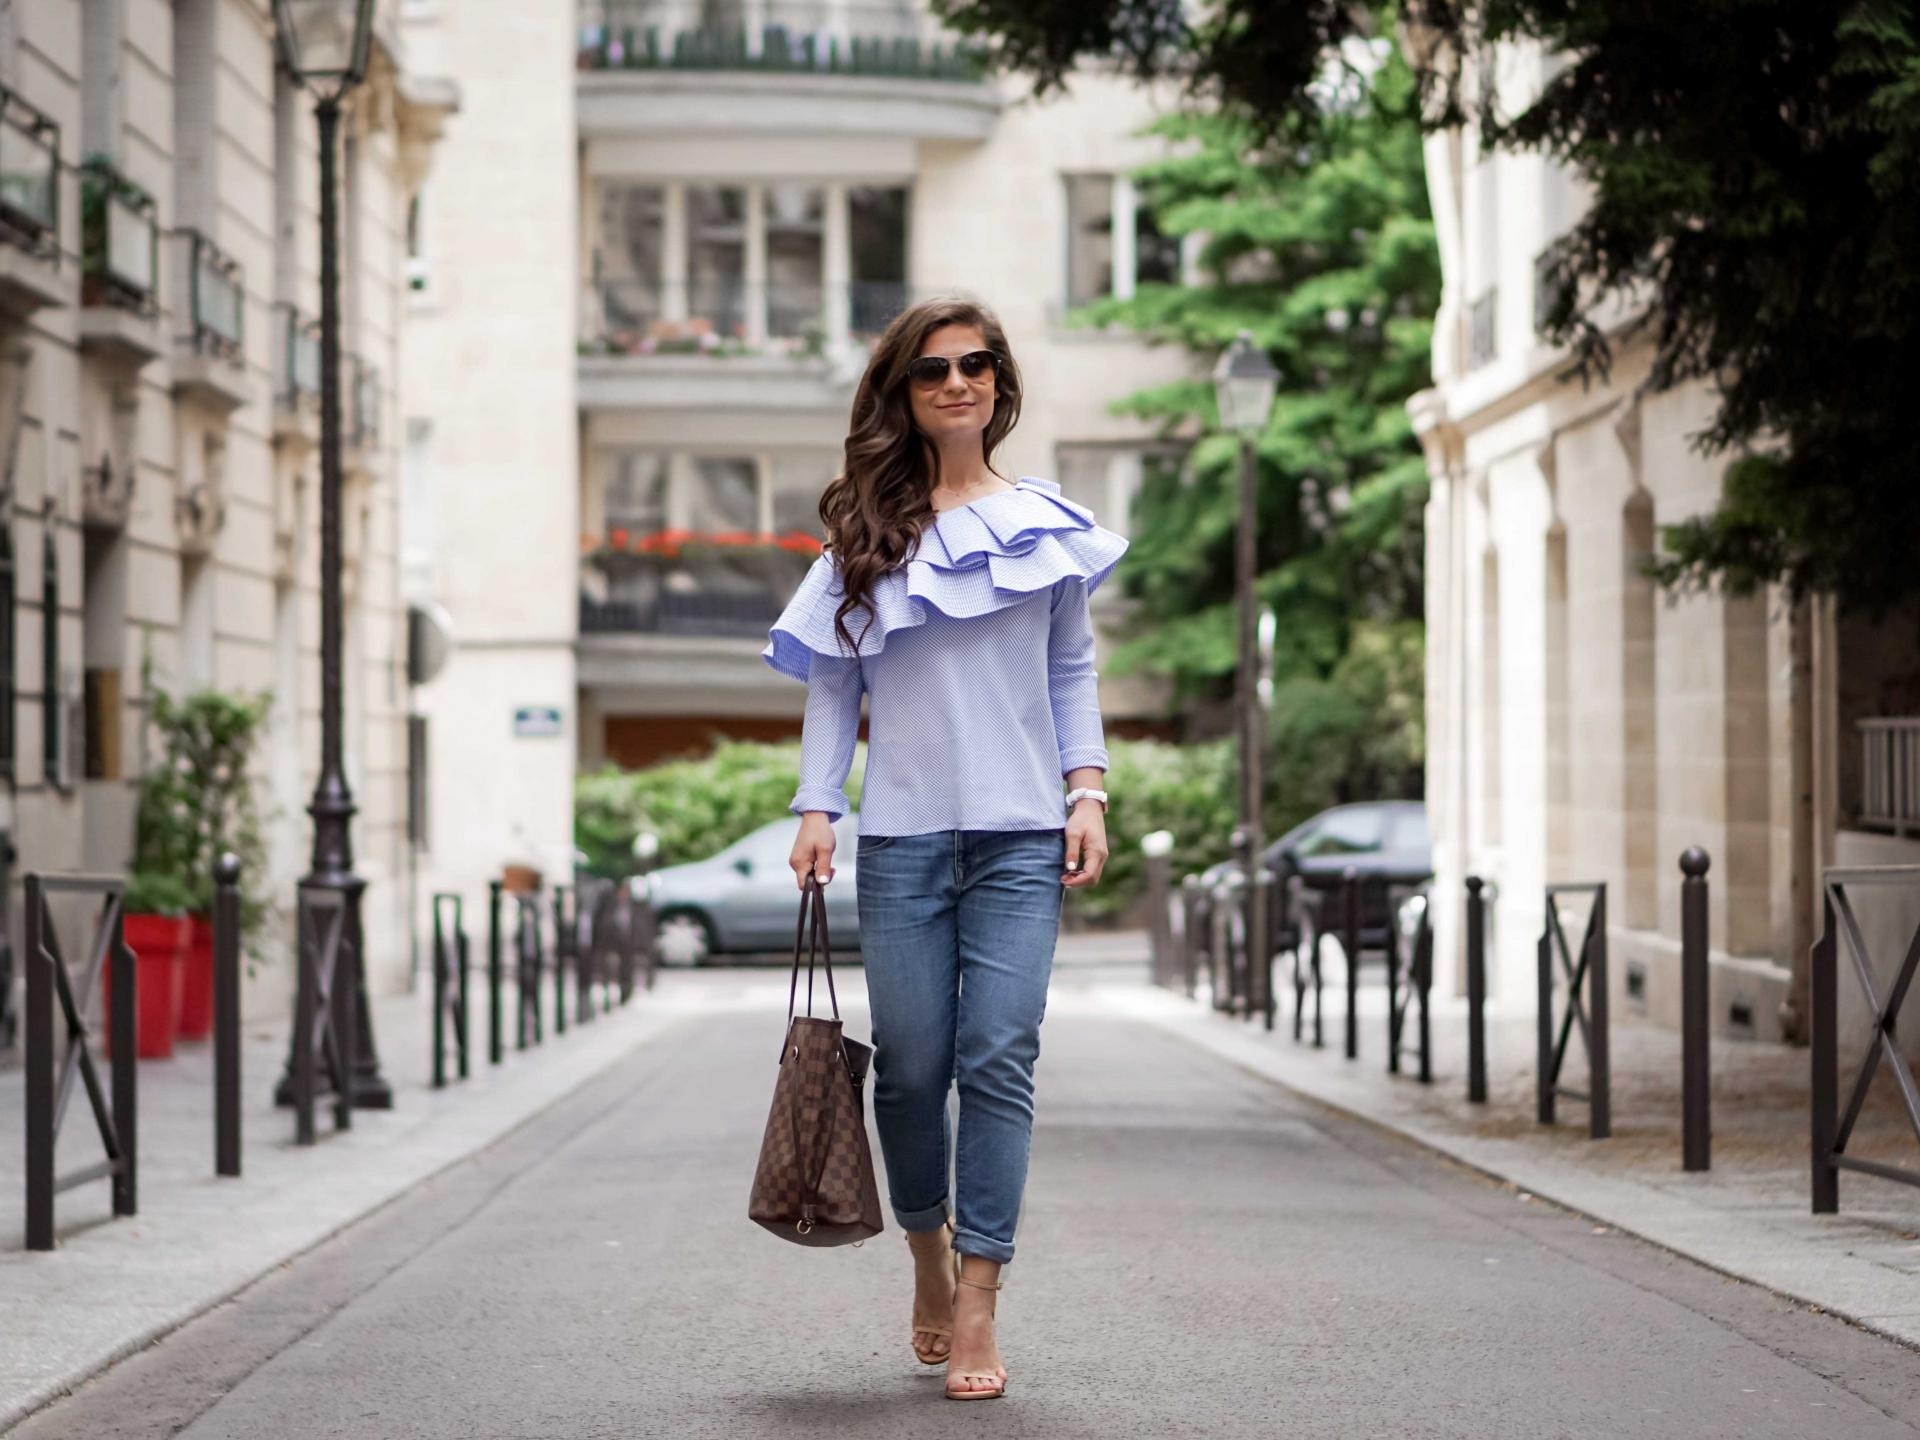 How to style the ruffle top as a petite